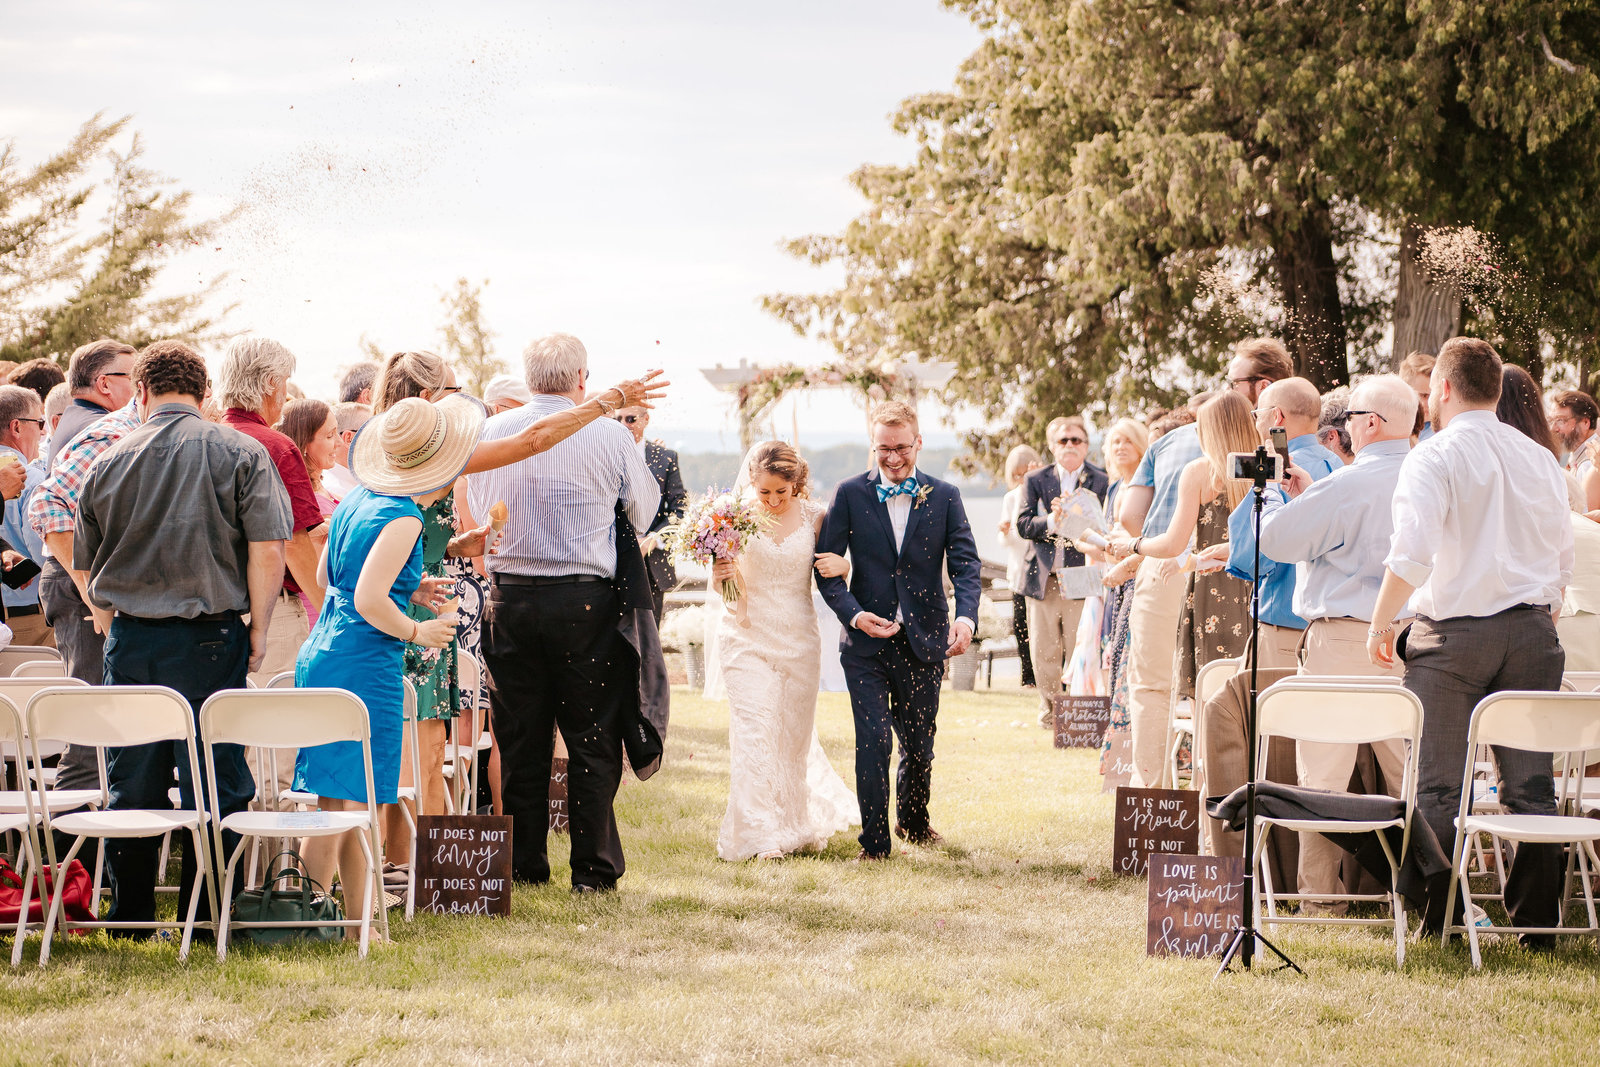 A Rustic Inspired Wedding at Ferry Watch (155 of 273)